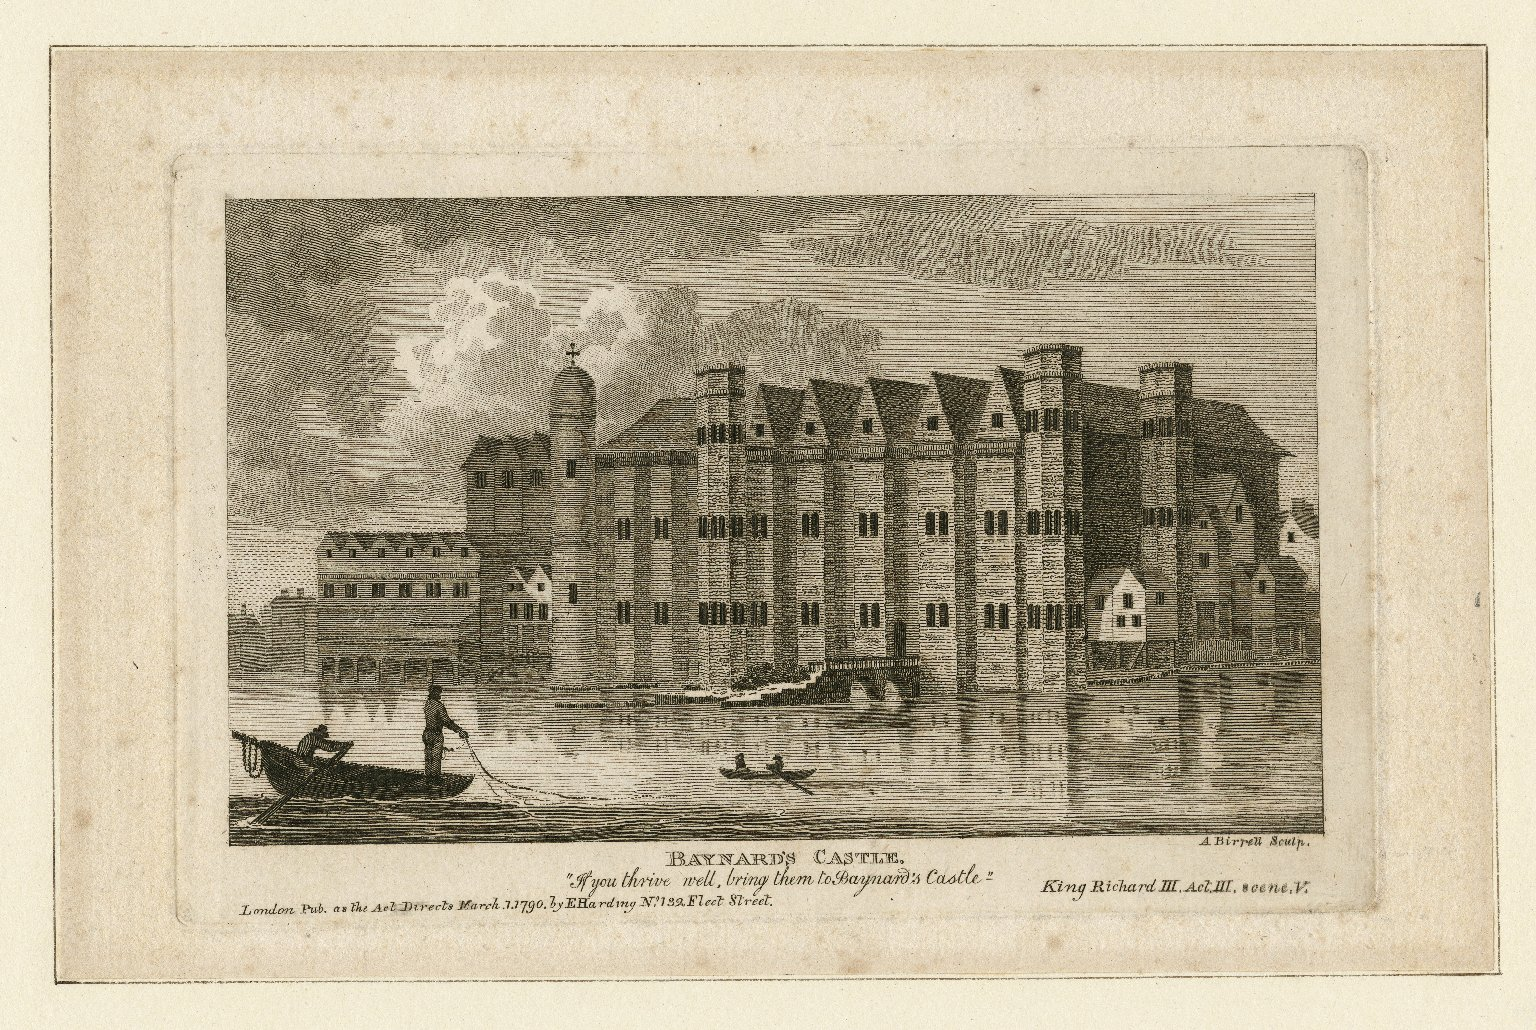 Baynard's Castle was close to The Bishop of London's Palace